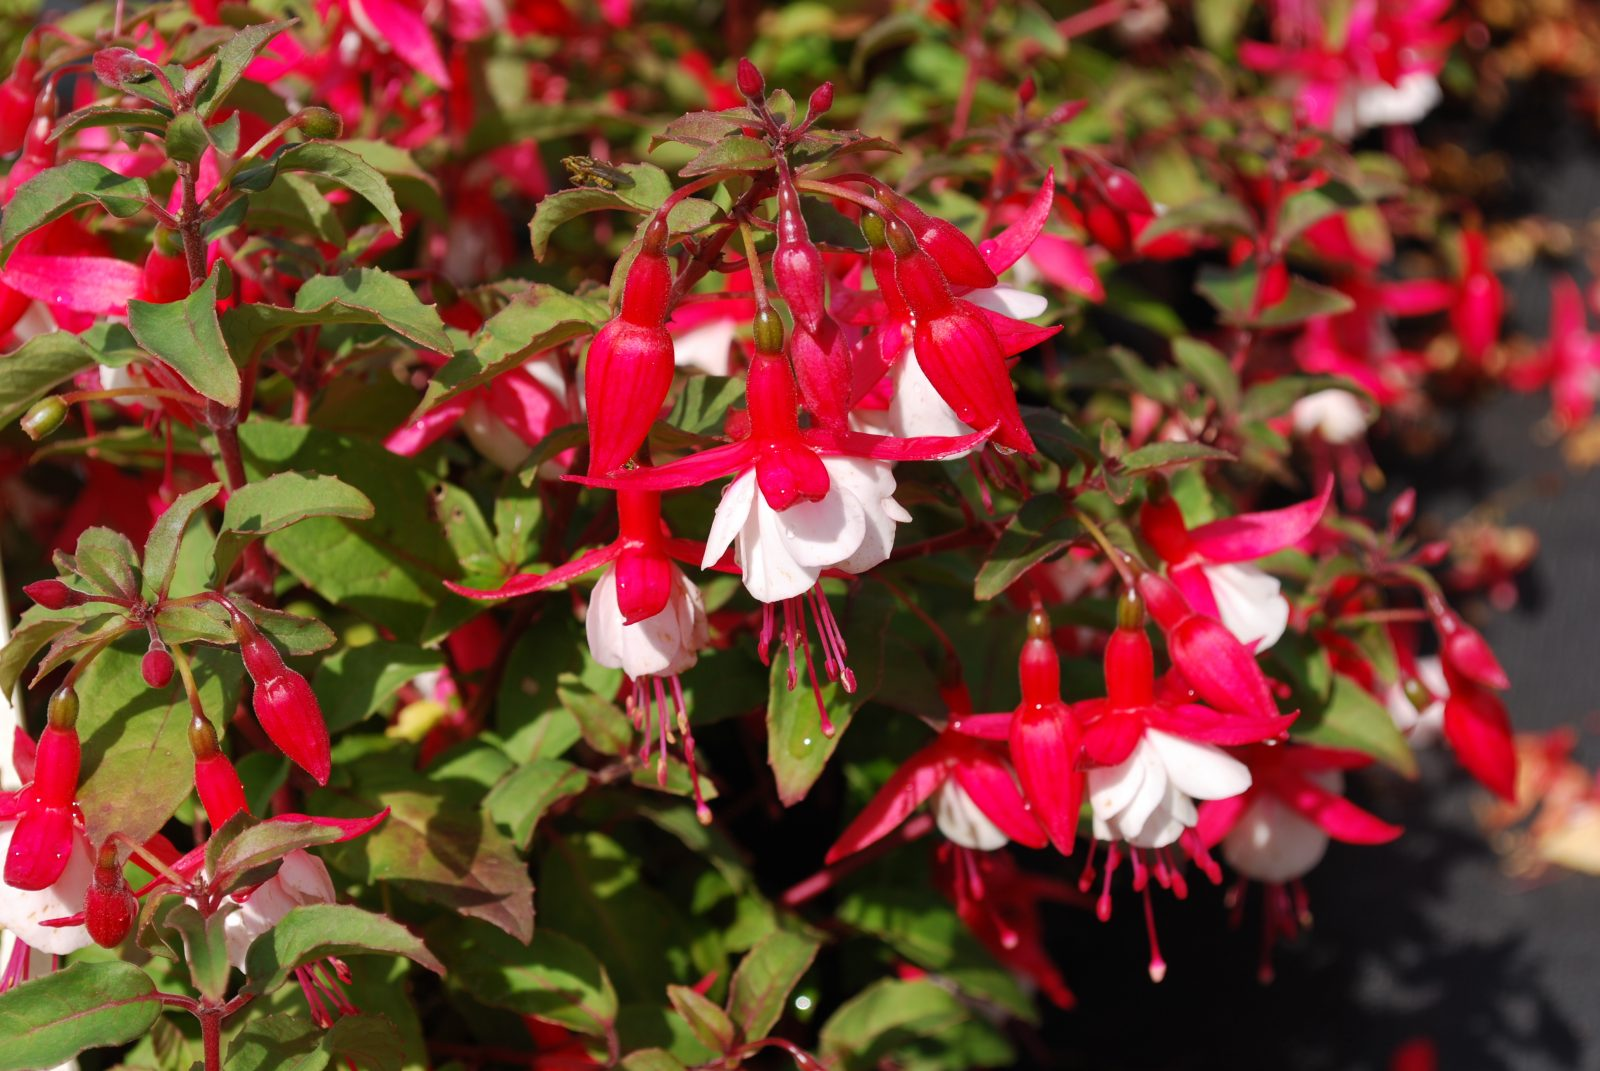 Fuchsia Alice Hoffman Hardy Fuchsia Shrubs For Sale Letsgoplanting